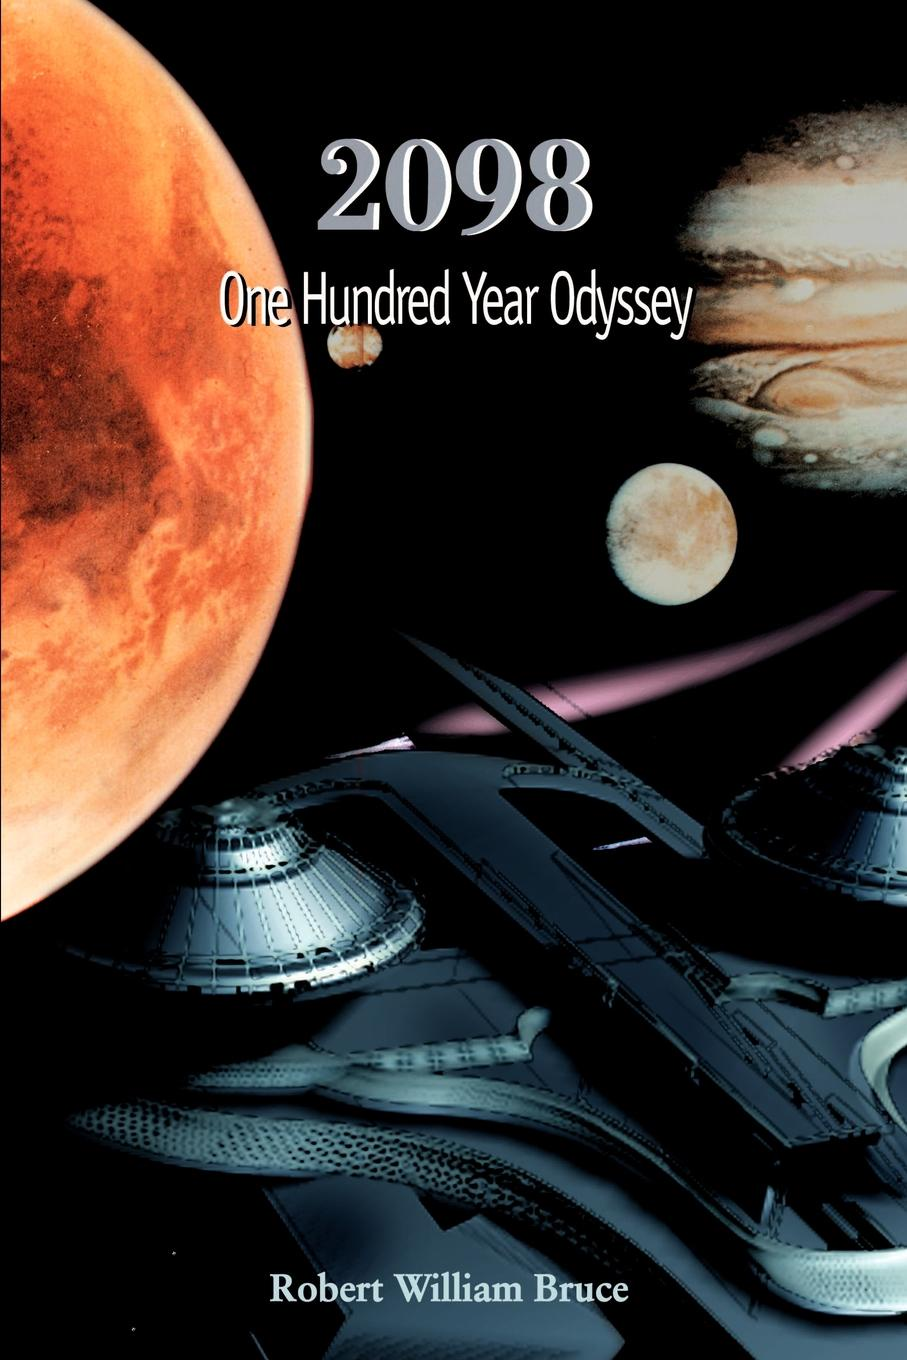 Robert William Bruce 2098. One Hundred Year Odyssey just one year